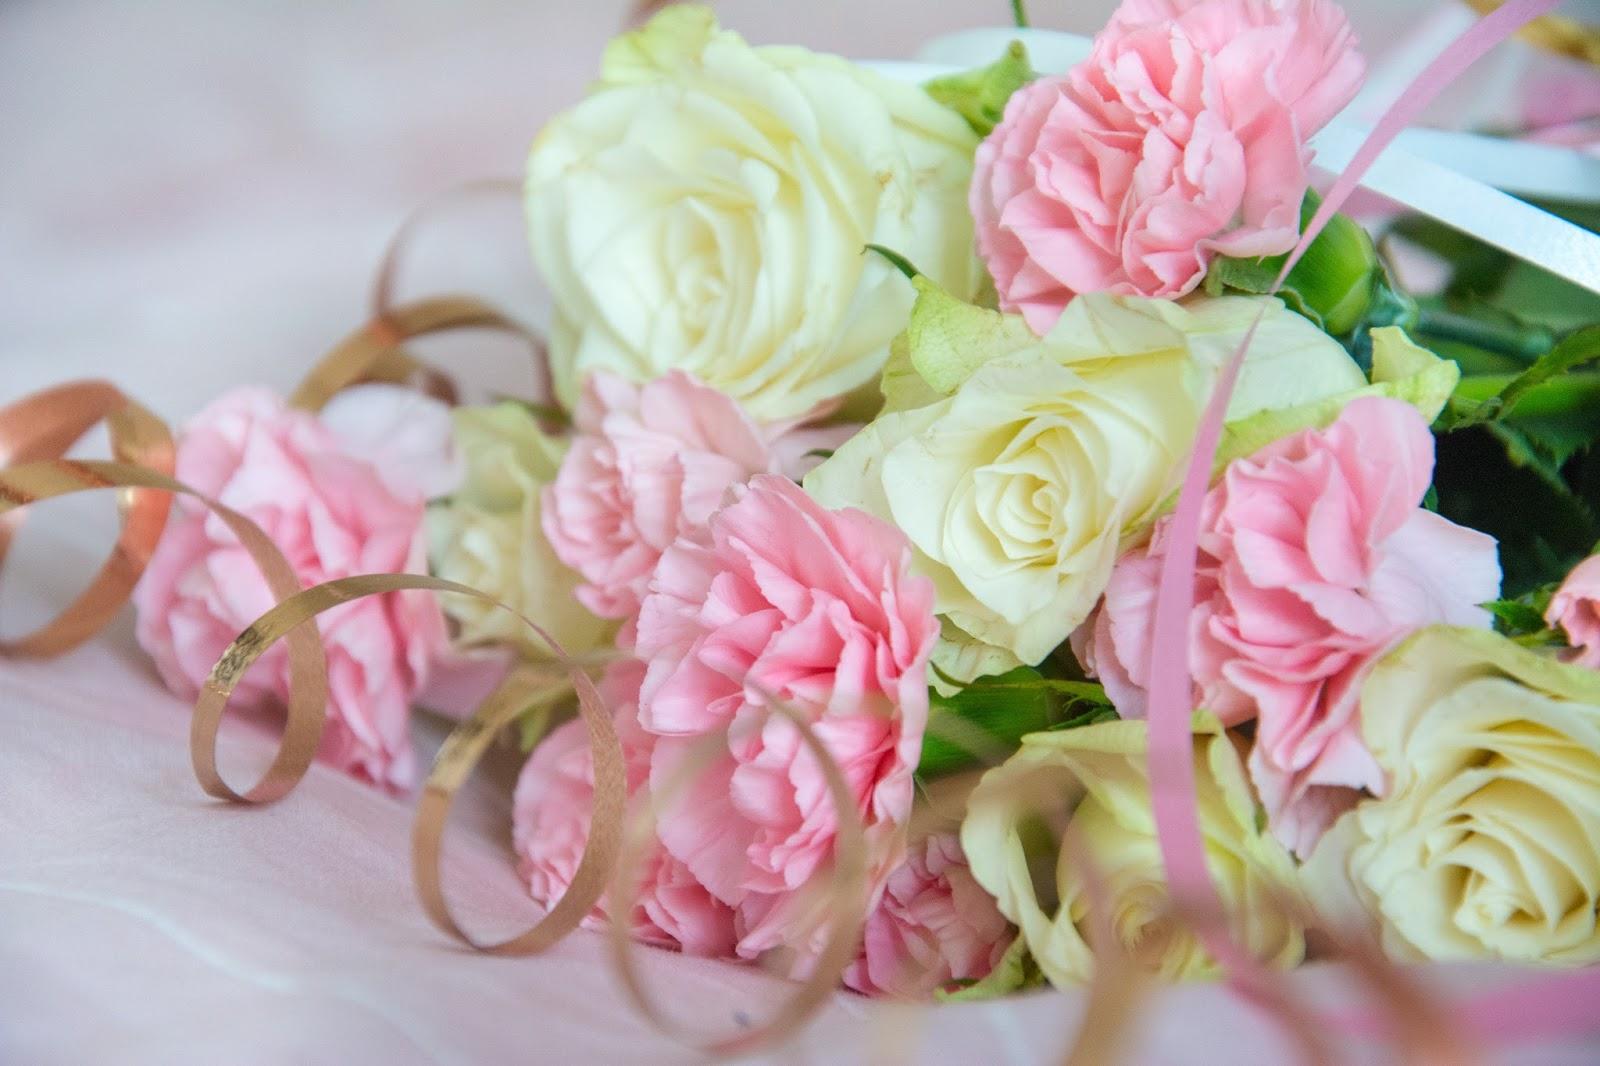 White Roses and Pink Flowers in Birthday Decorations